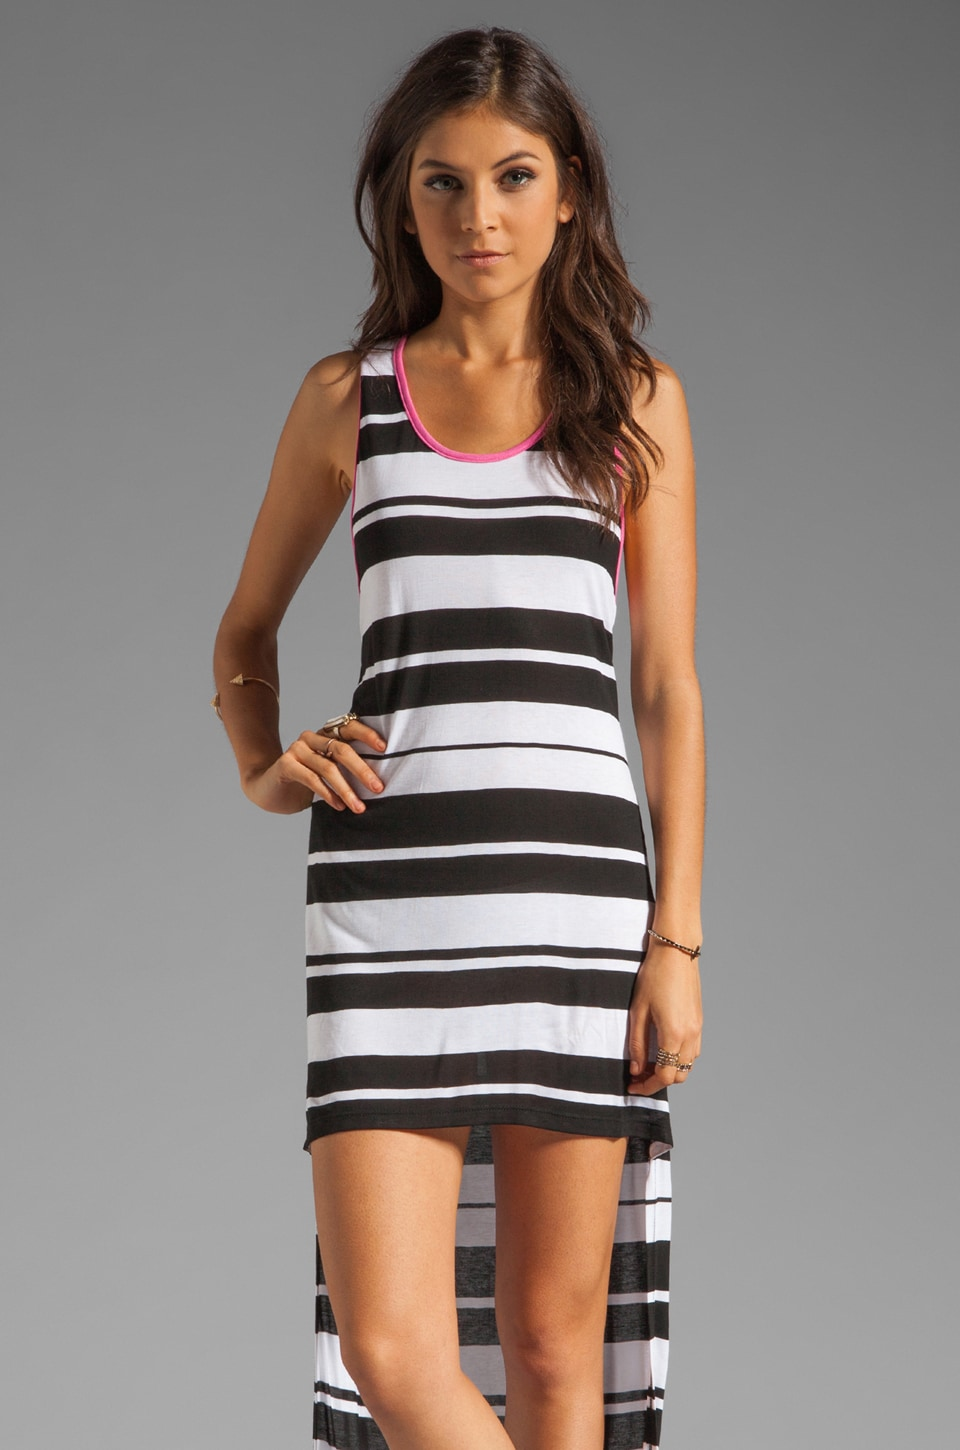 Blue Life Sleeveless Hi Lo Dress in Black/White Stripe